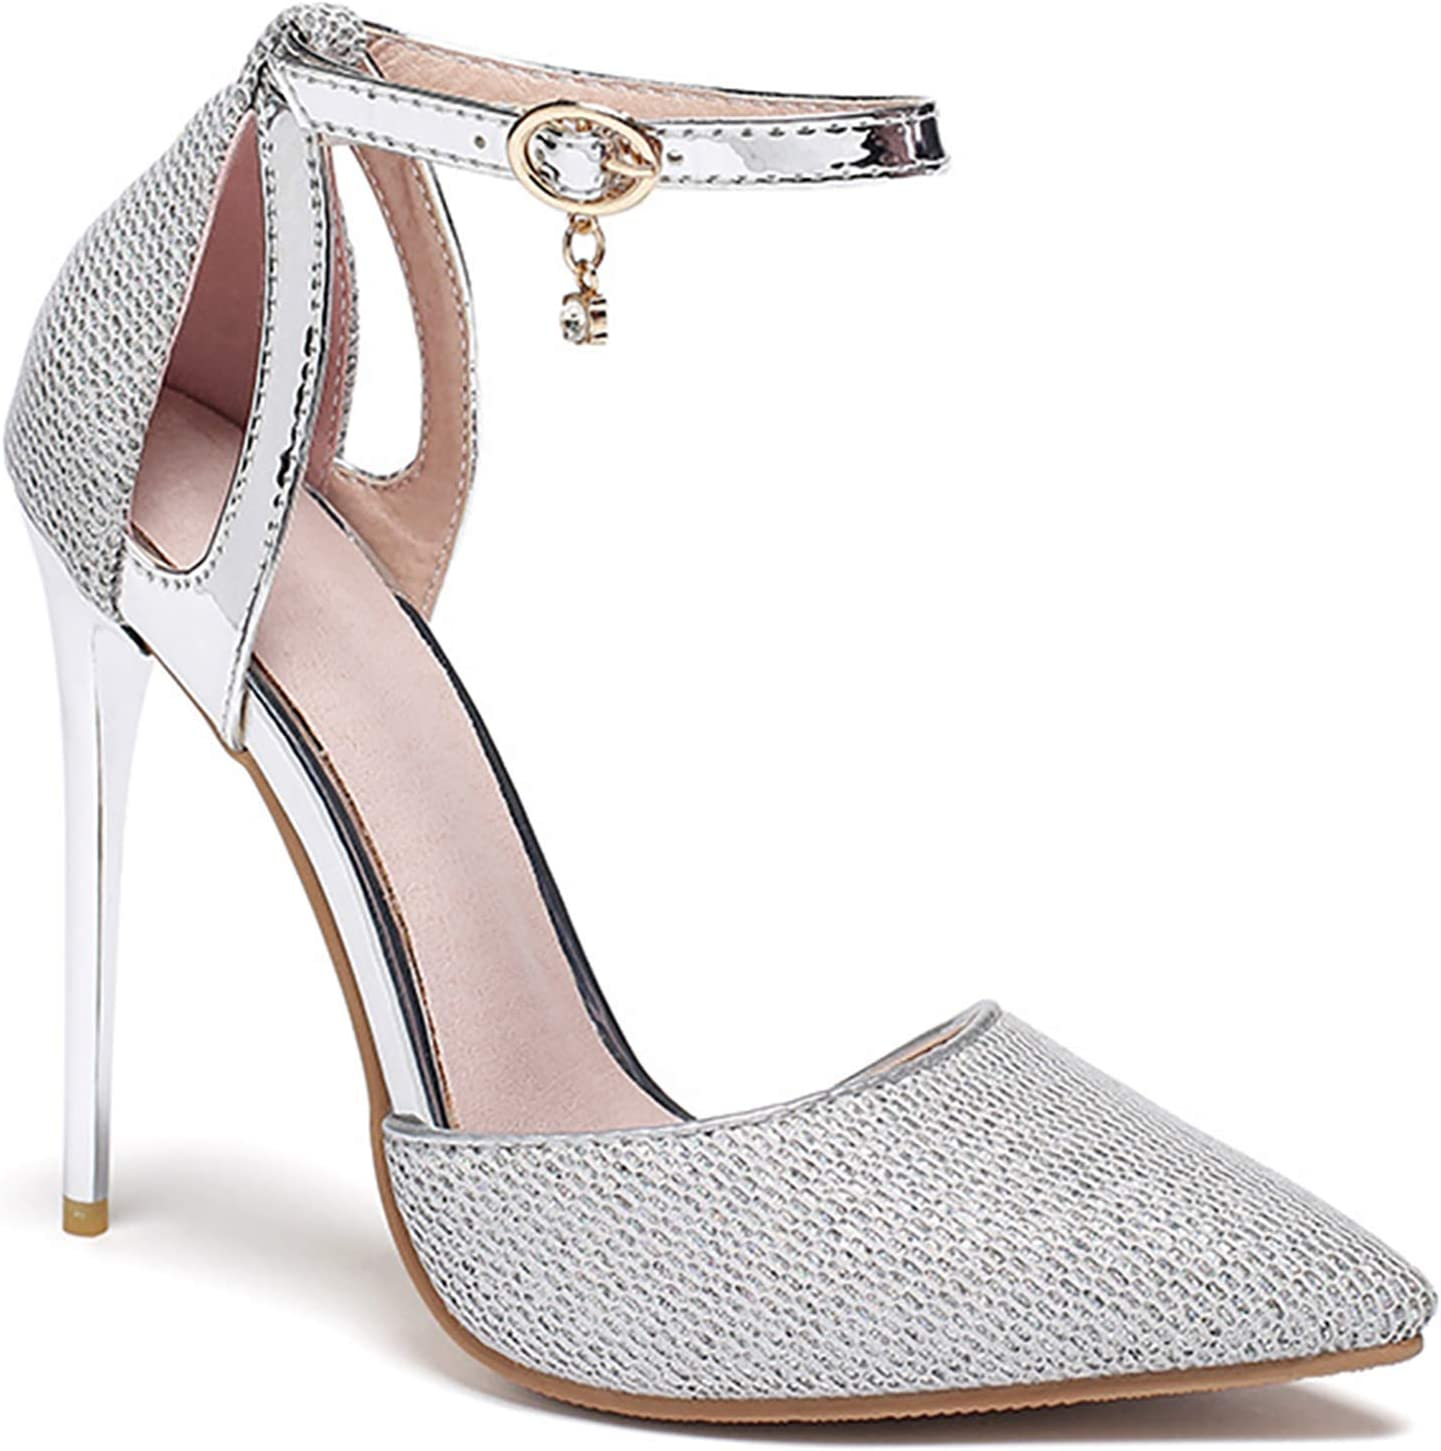 YTWD OFFer Fish Mouth Stiletto Sandals High Women Hollow OFFicial store Toe Heel Open